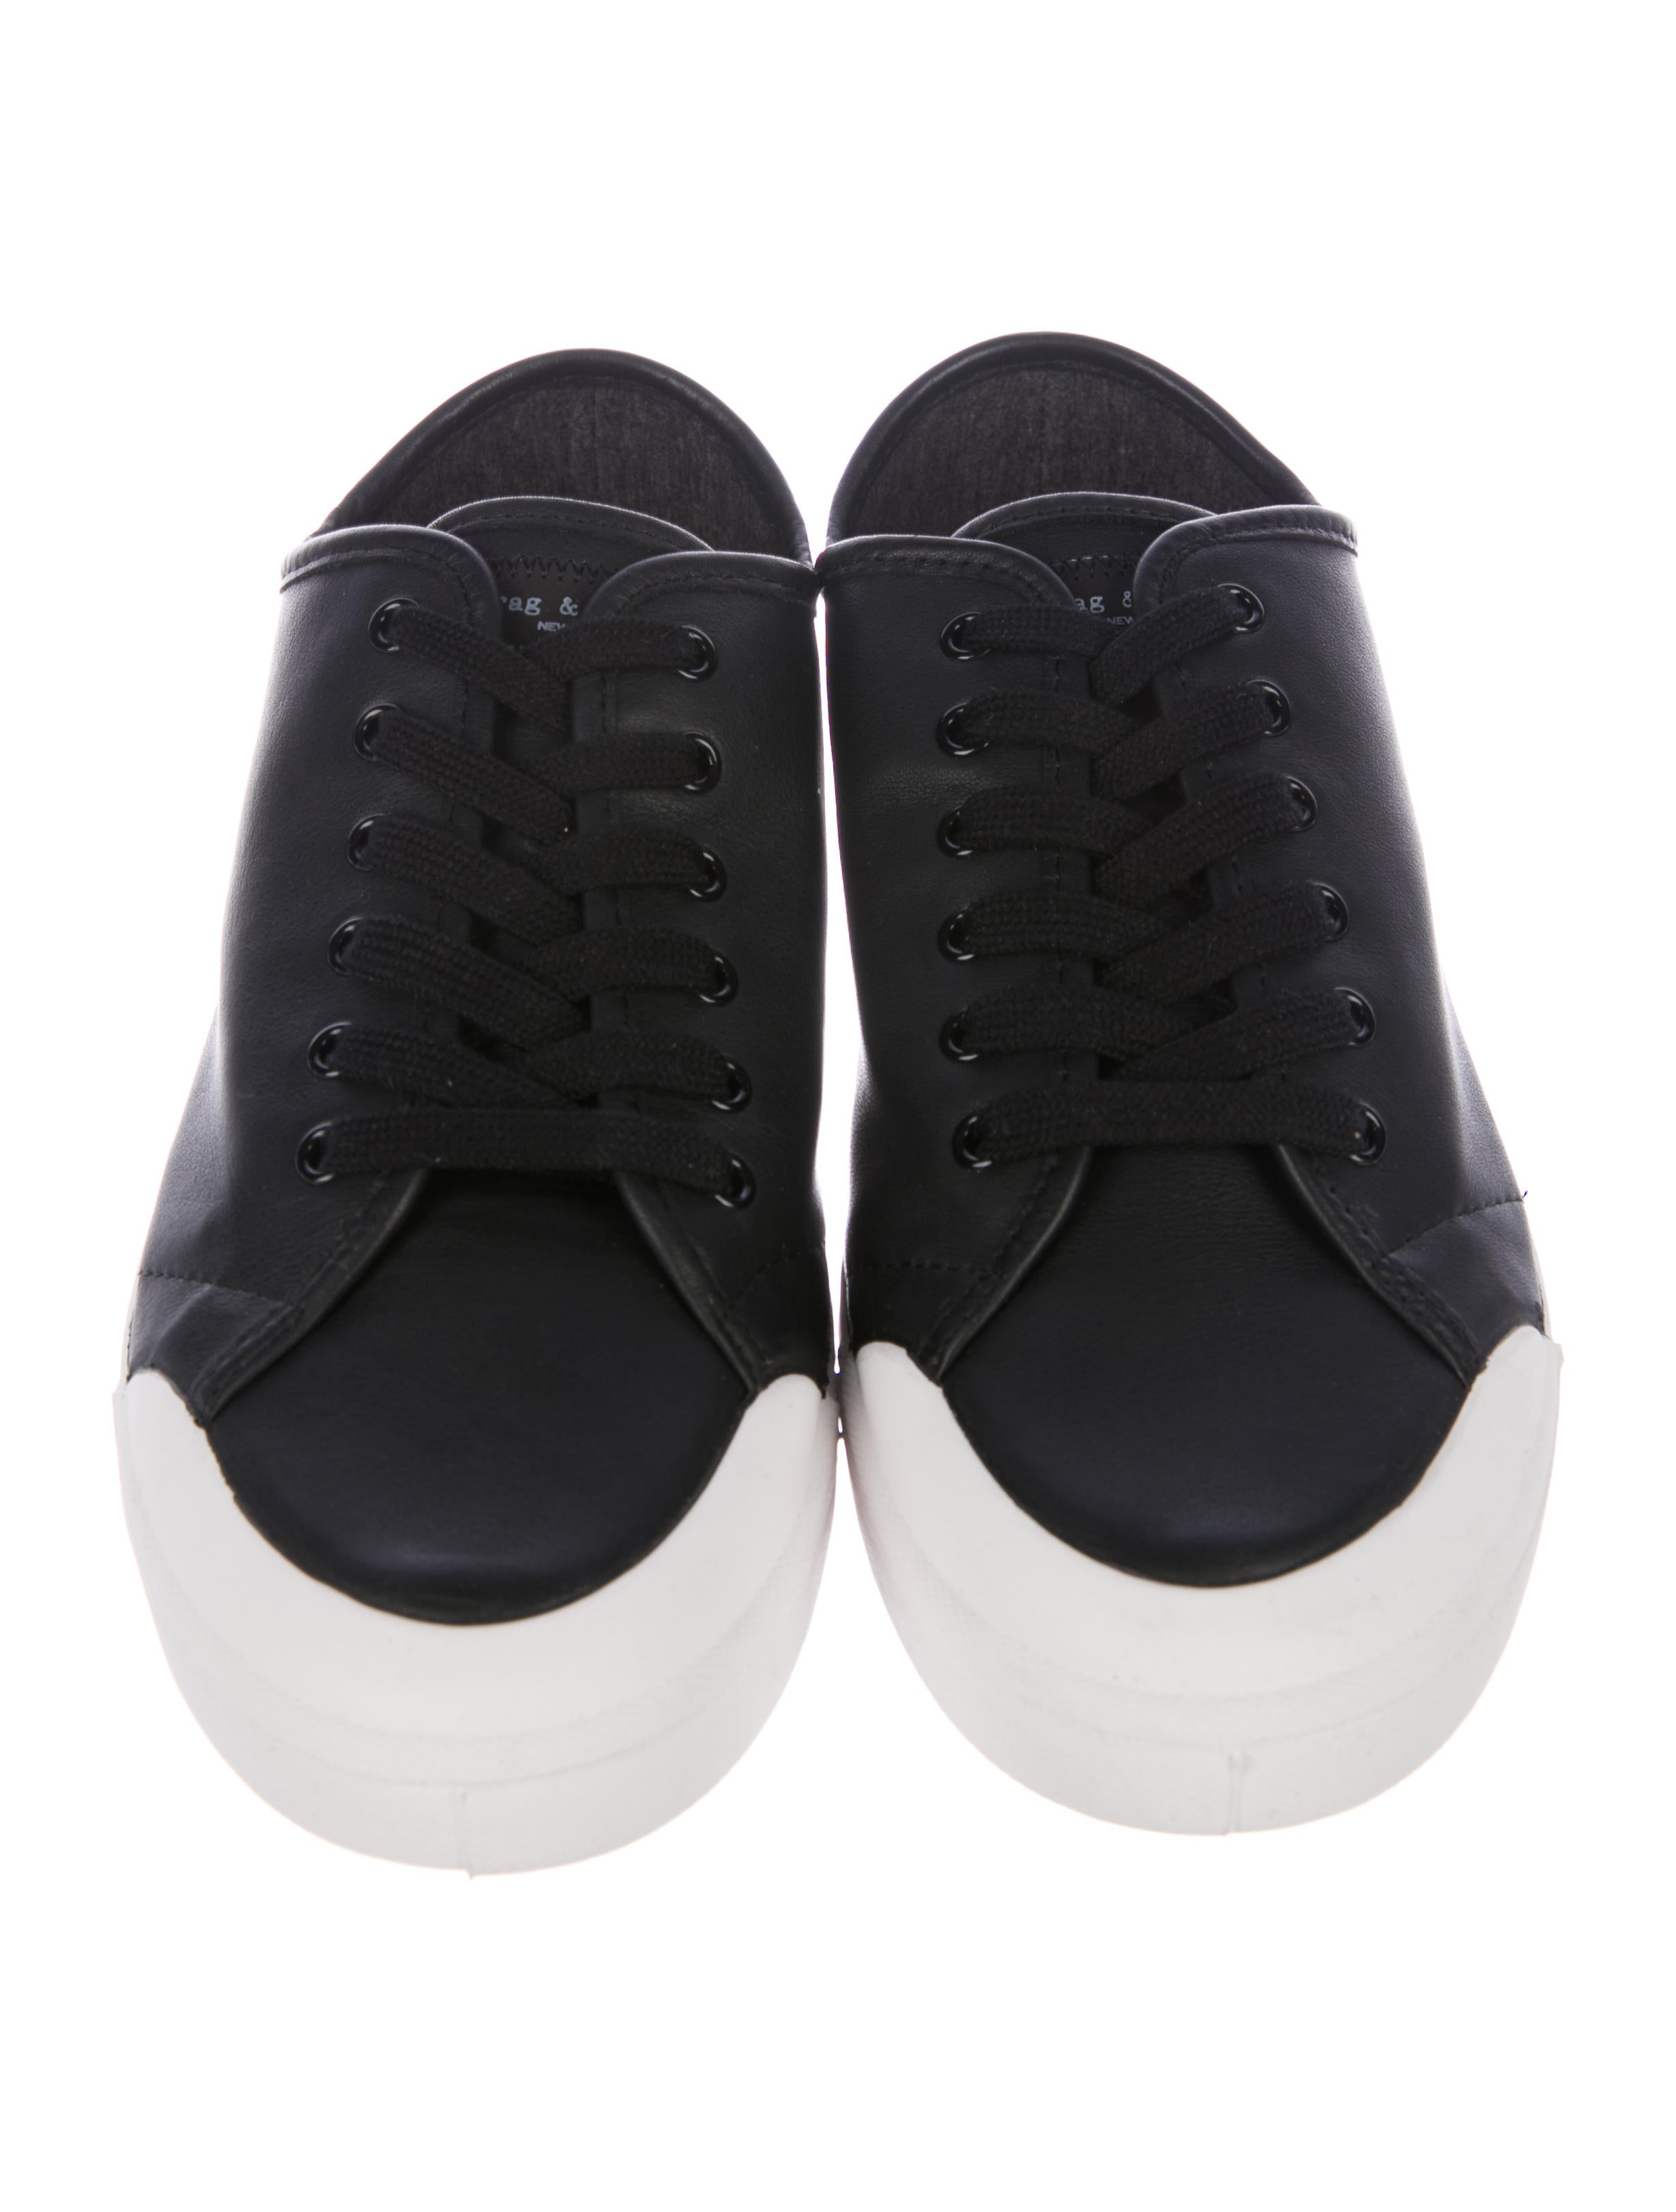 sale how much Rag & Bone Standard Issue Low-Top Sneakers w/ Tags clearance top quality outlet visit sale many kinds of hgXiy